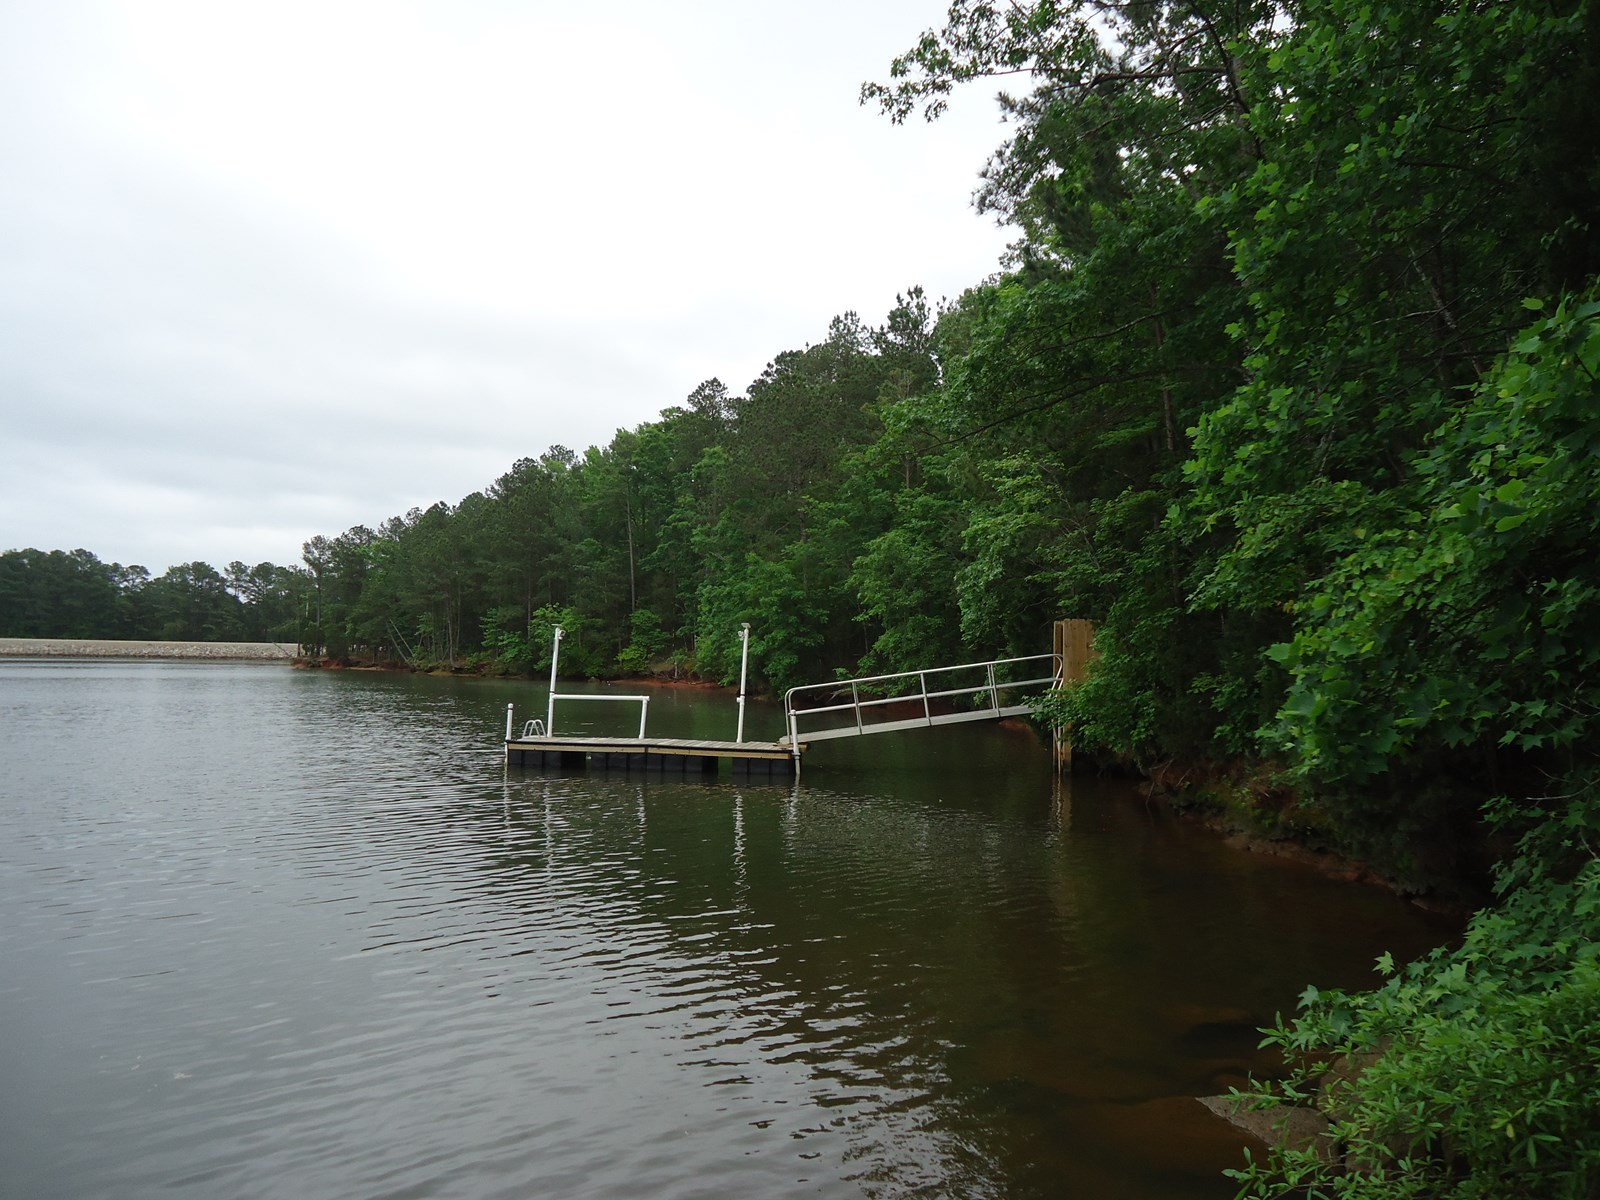 BEAUTIFUL LEVEL 2.2 ACRES FOR SALE ON LAKE MONTICELLO